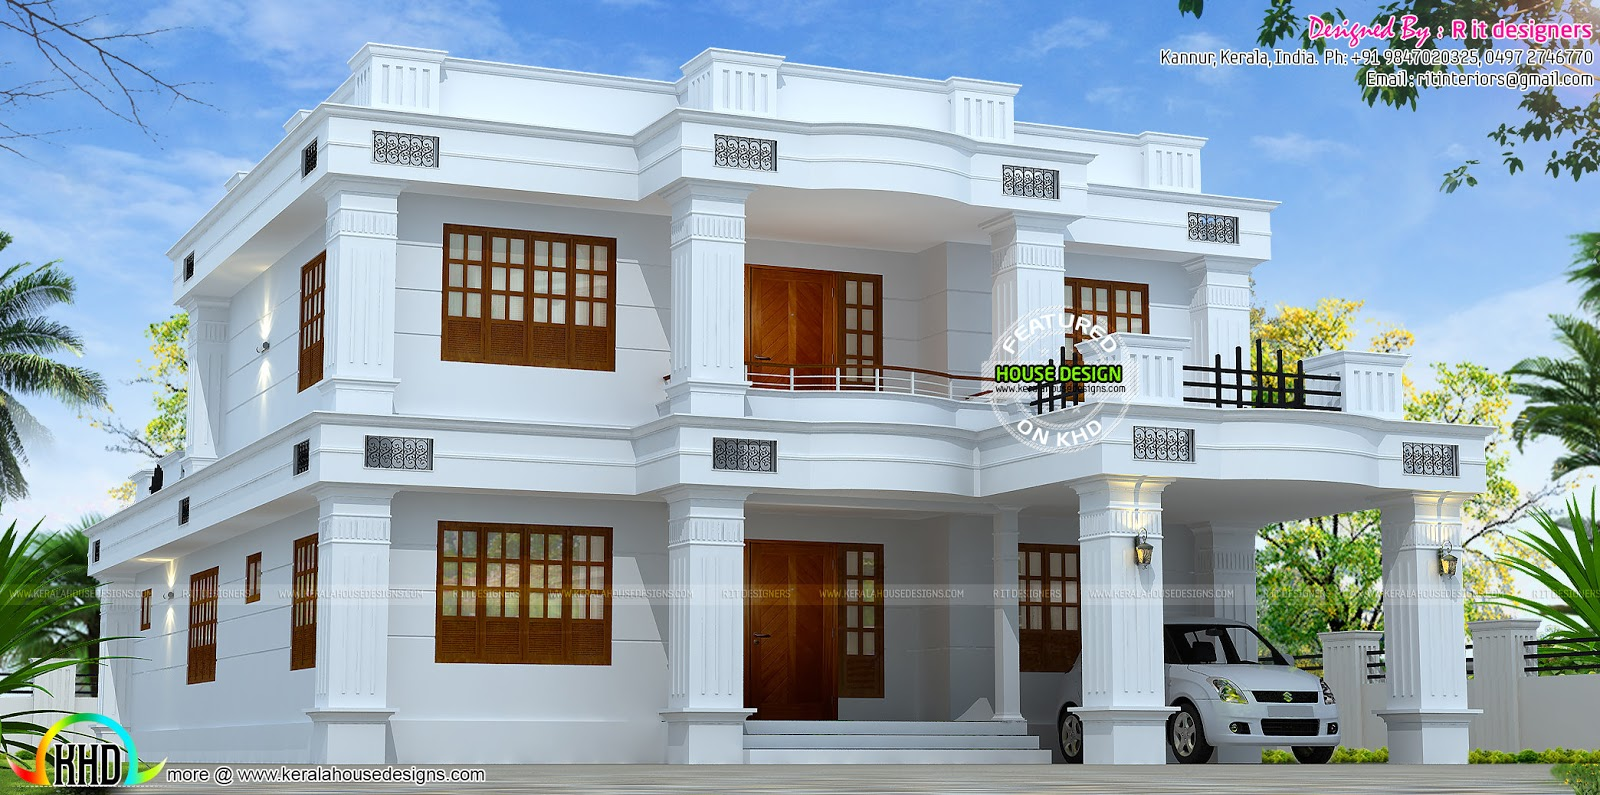 February 2016 kerala home design and floor plans House plans and designs